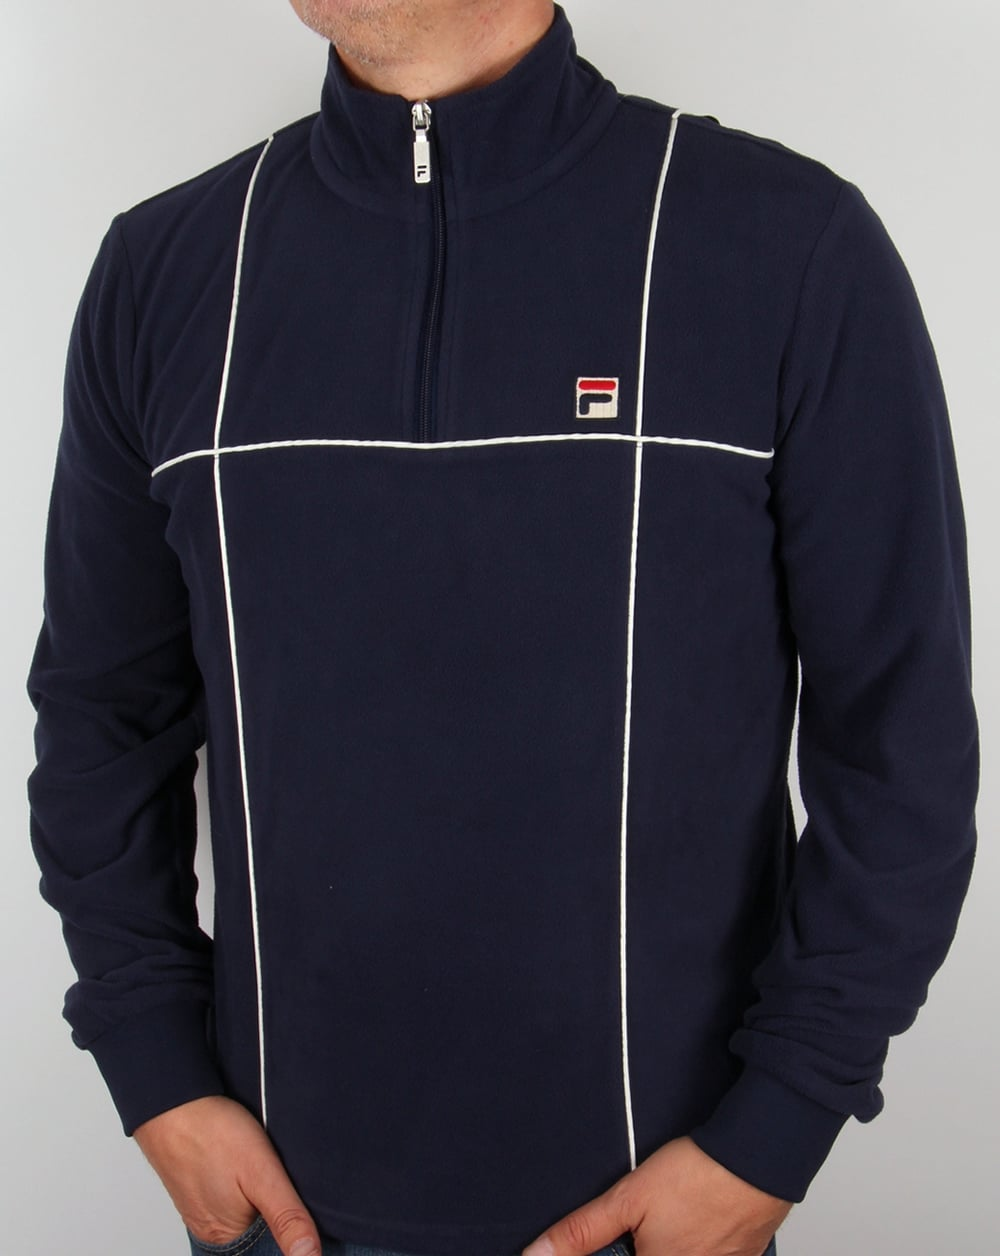 251000ad6628 Fila Vintage Microfleece Navy,zip-up, quarter, sweater,jacket